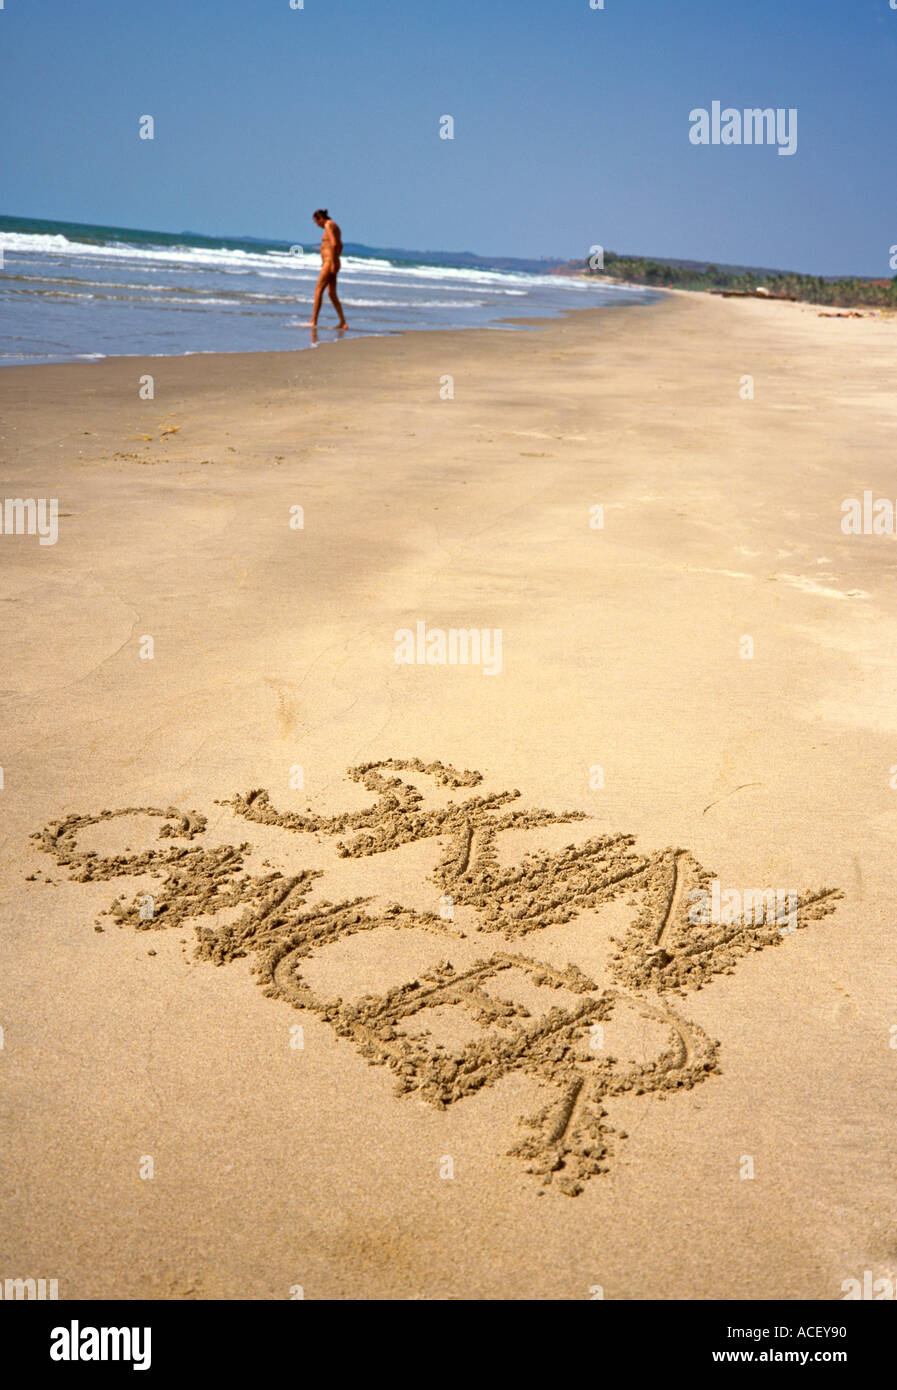 India Goa Skin Cancer in sand with sunbather - Stock Image